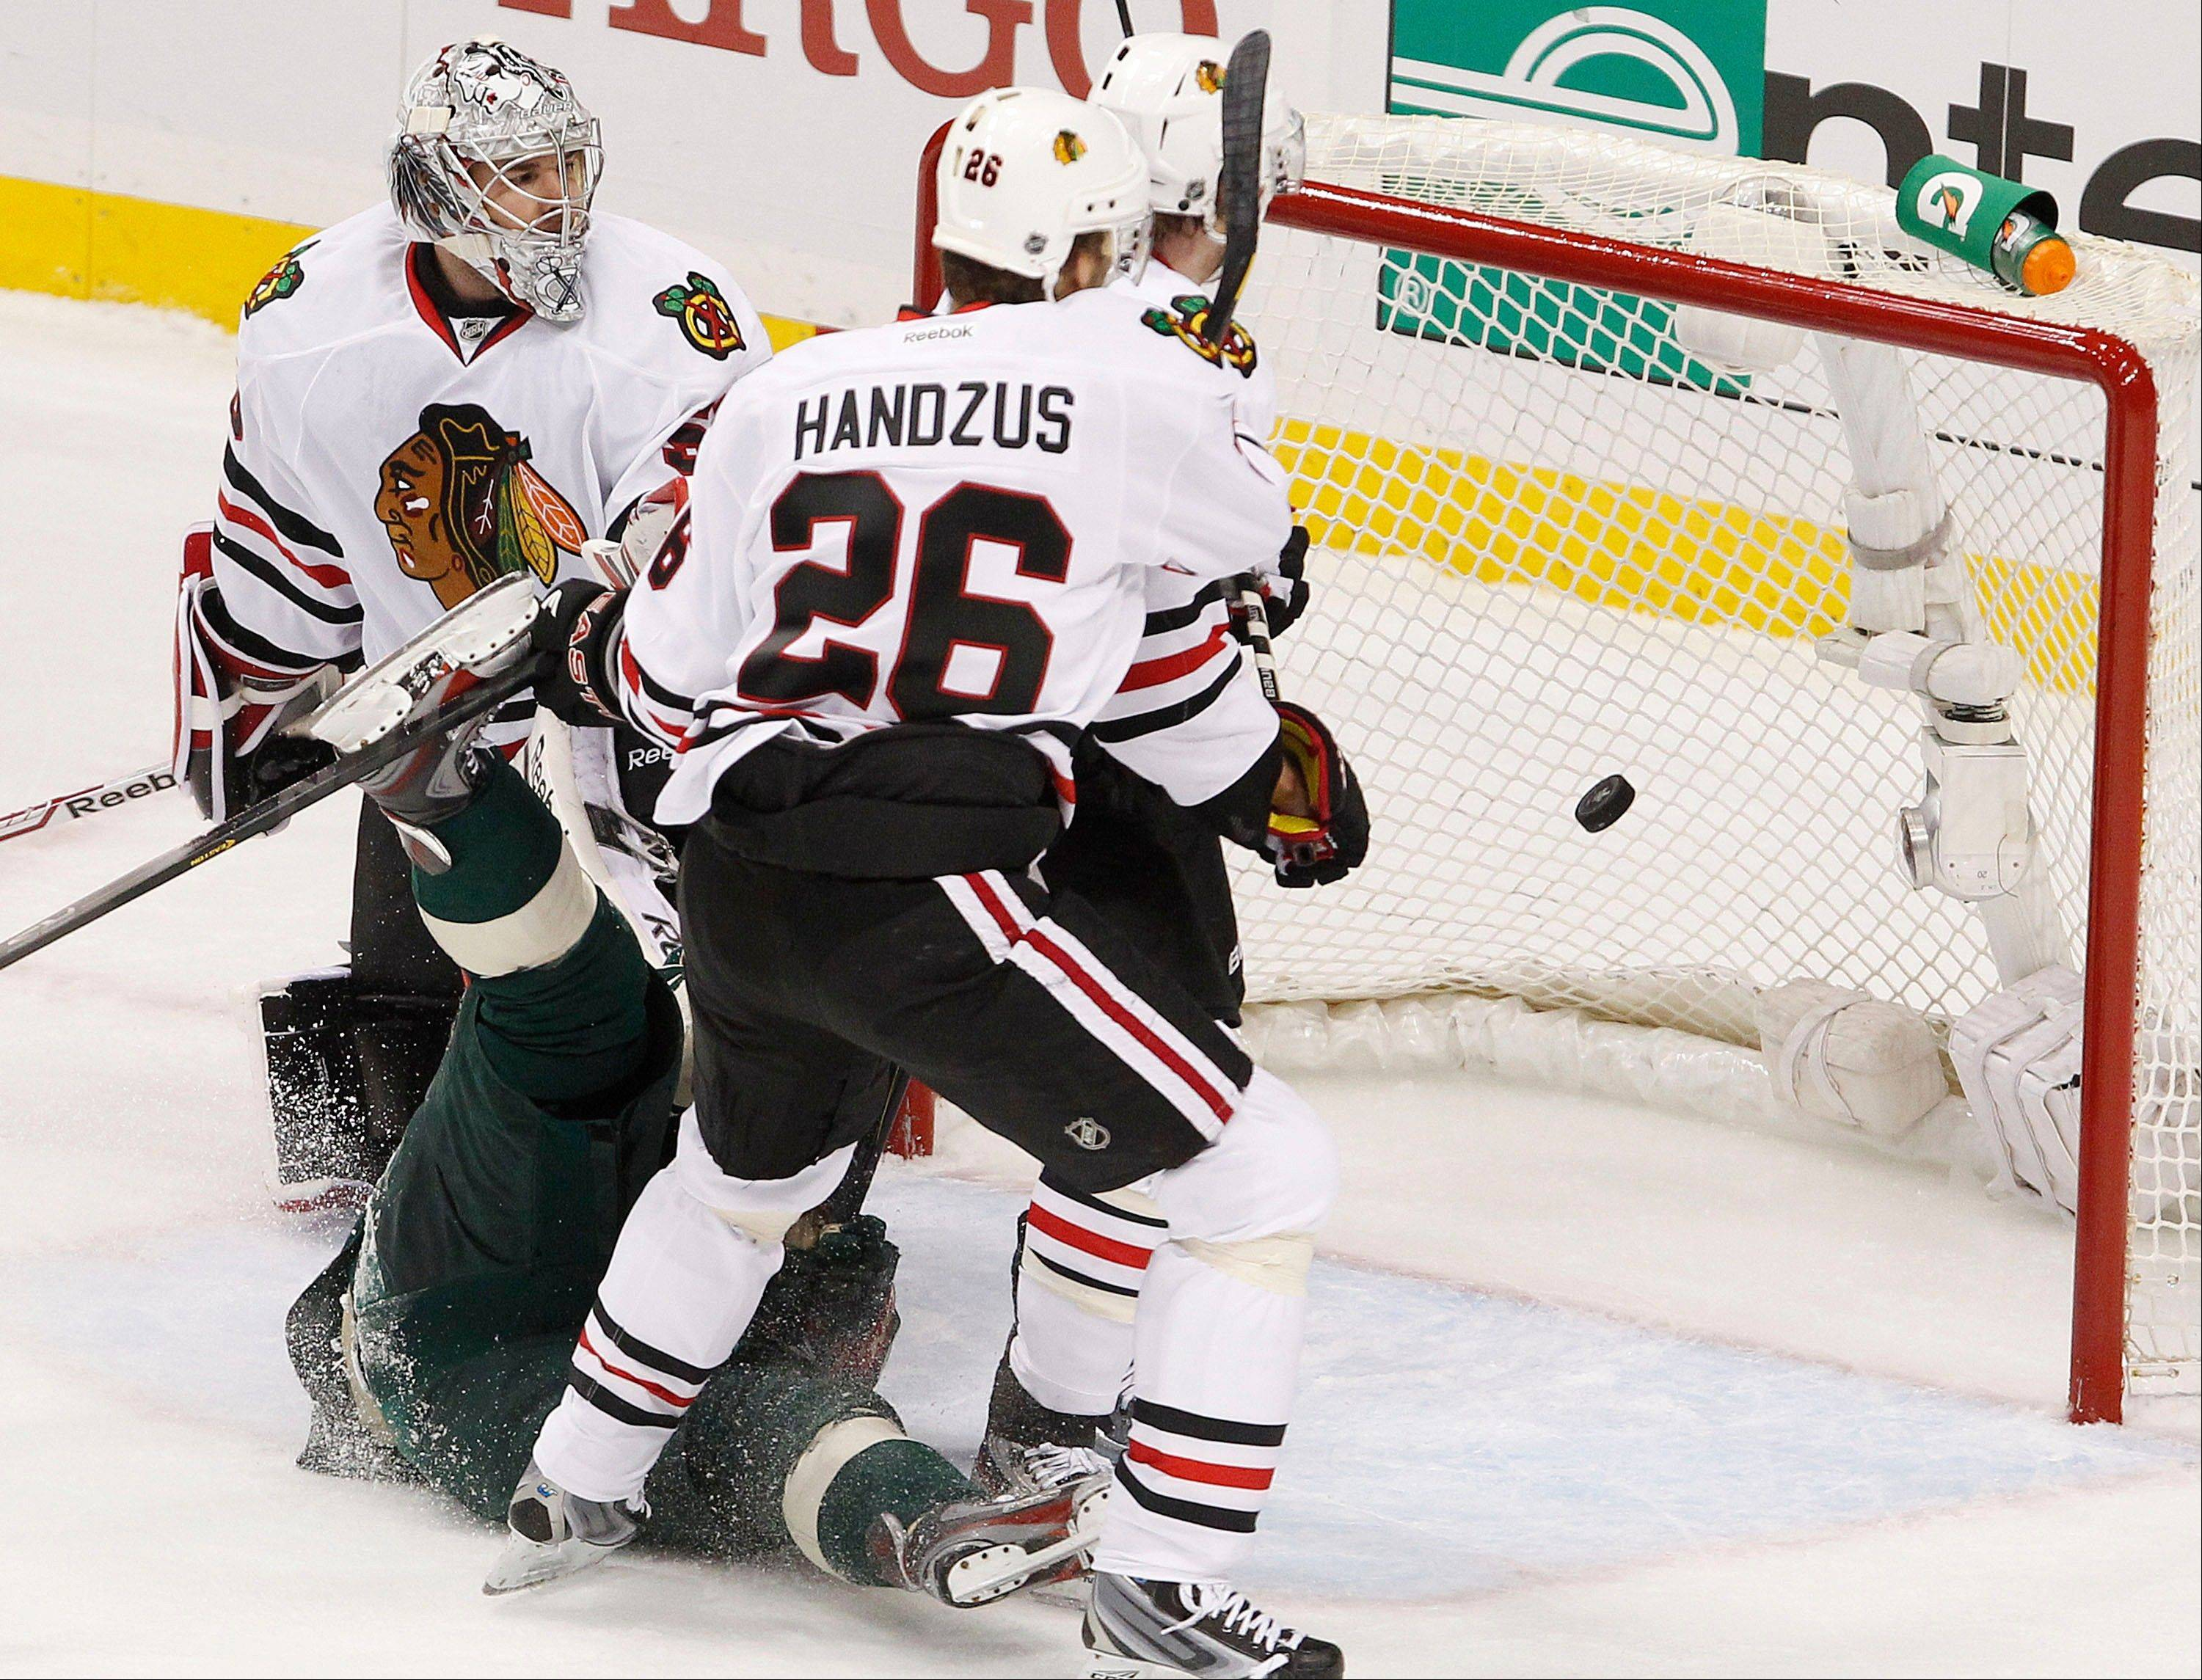 Blackhawks goalie Corey Crawford and center Michal Handzus watch as a Pierre-Marc Bouchard goal goes into the net in Sunday's first period in Game 3 of the Hawks' first-round playoff series with the Minnesota Wild.